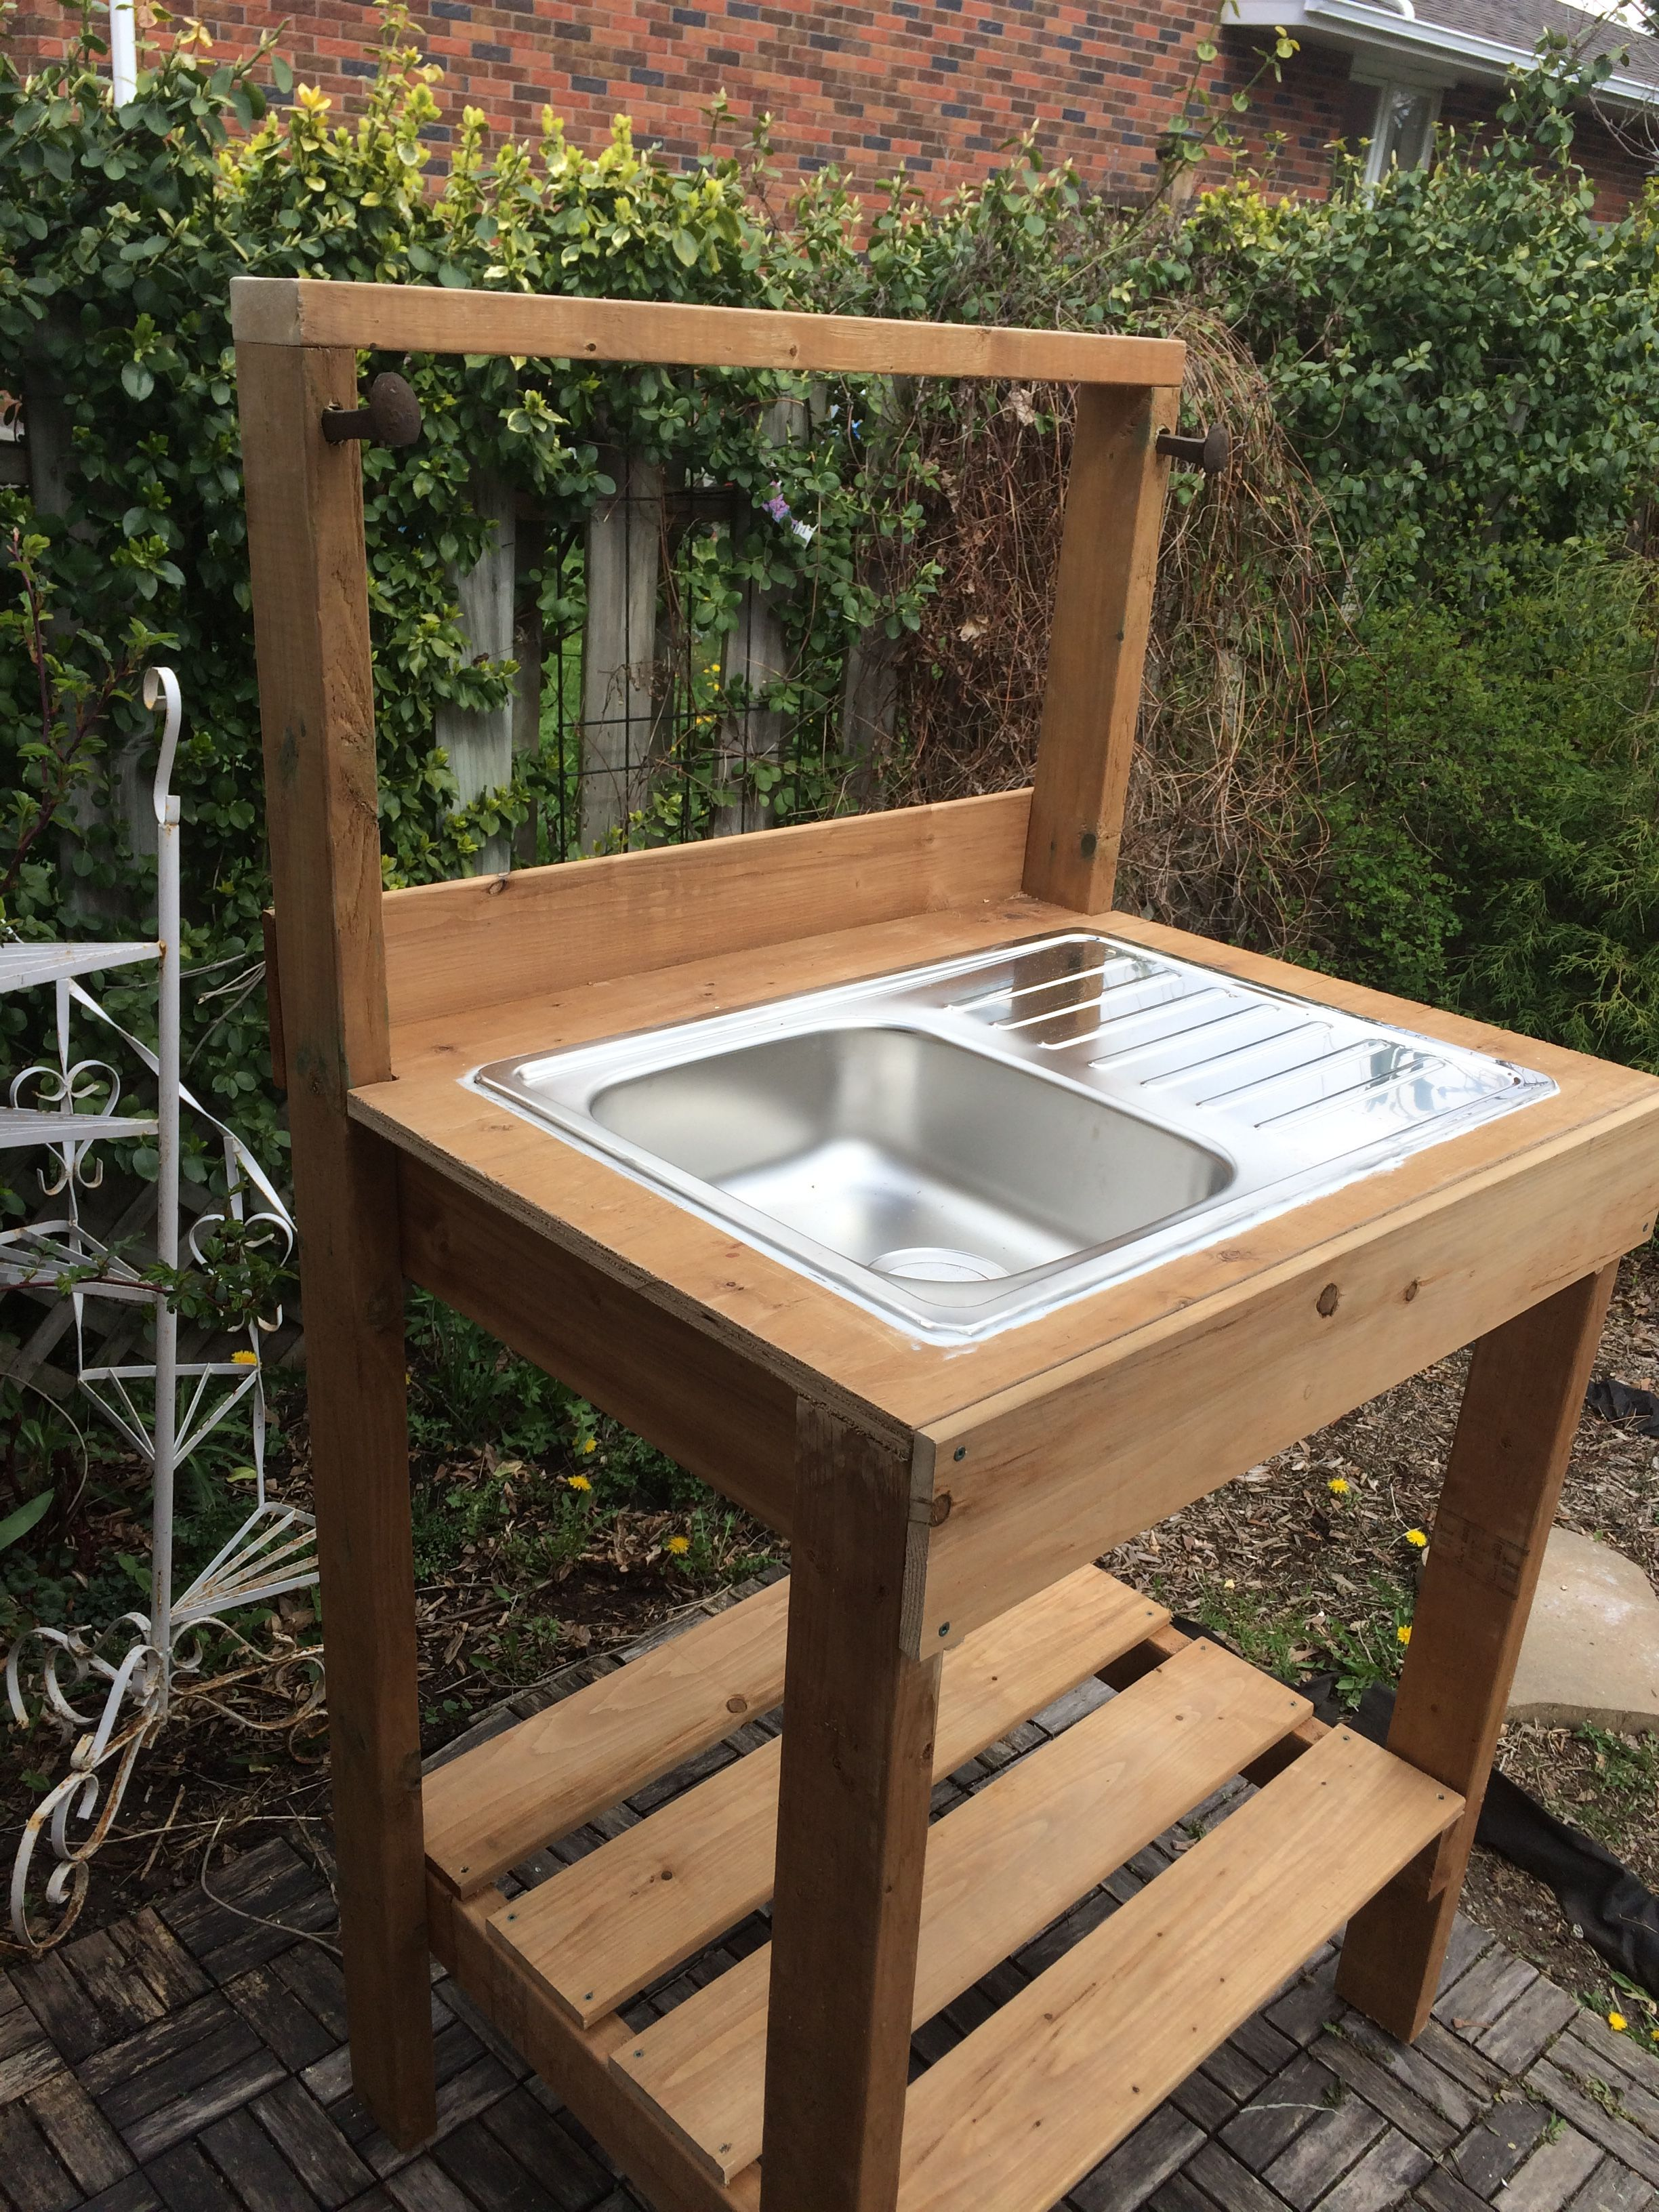 Fish cleaning station Outdoor kitchen Pinterest